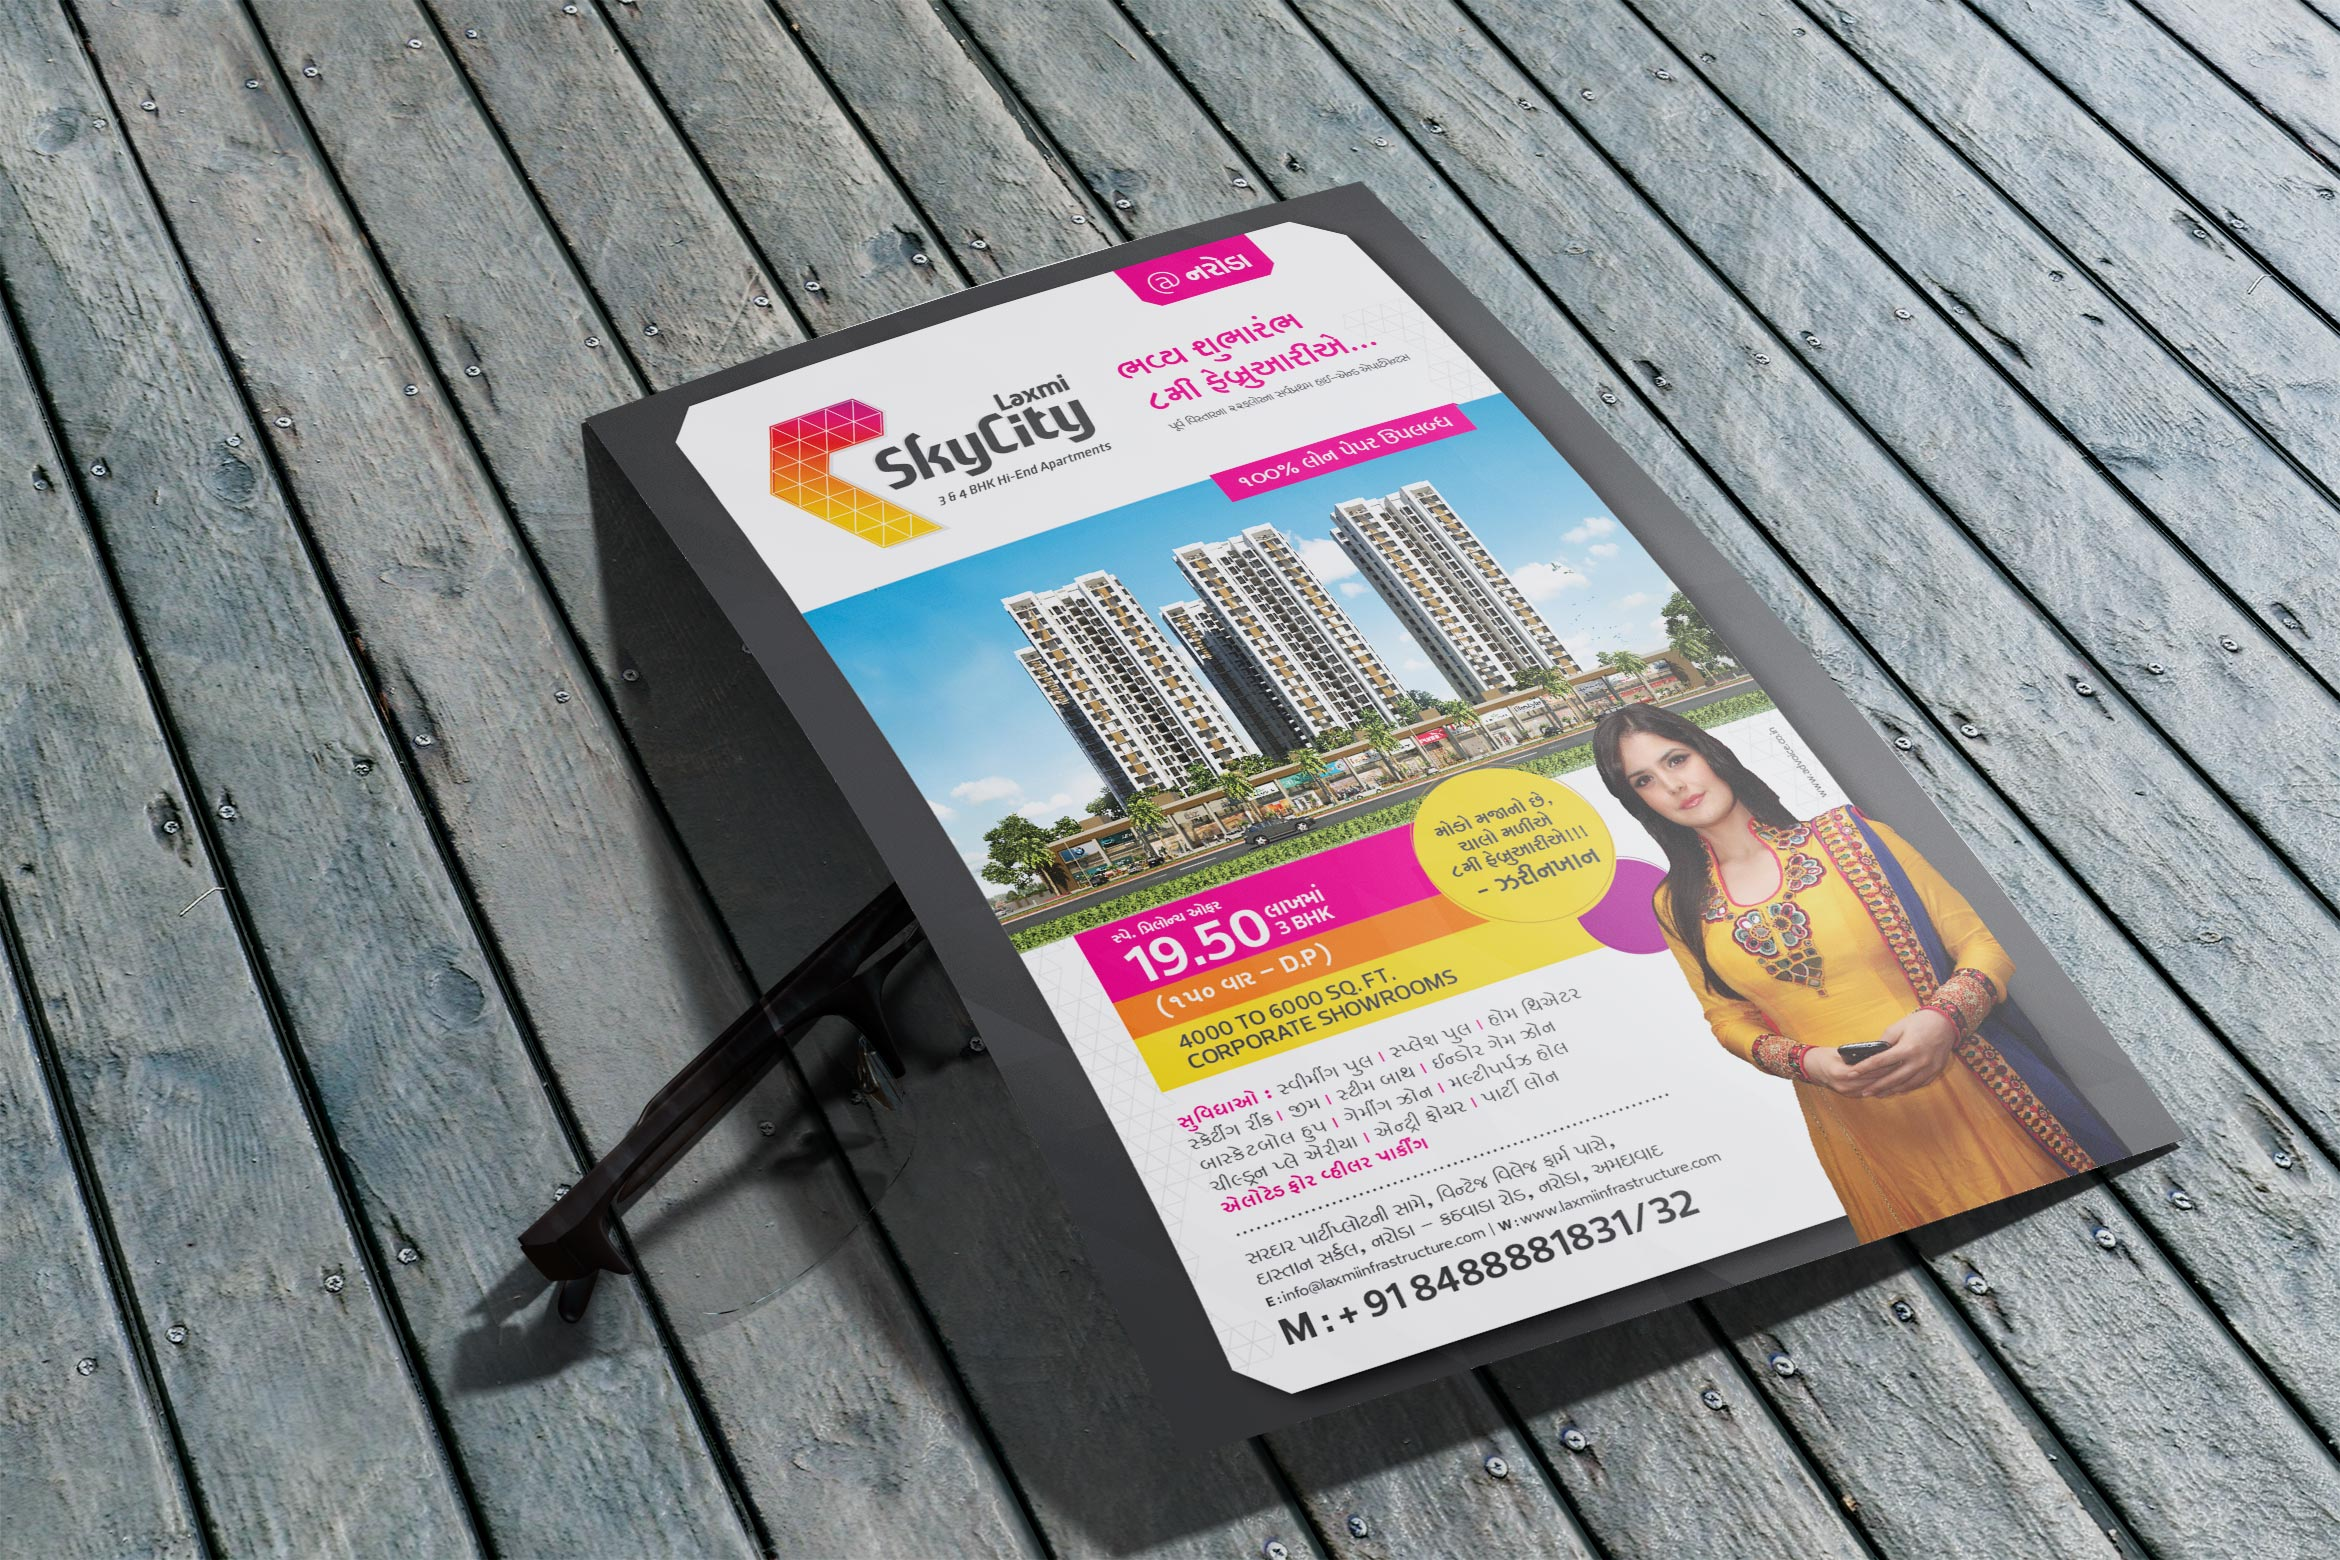 laxmi-skycity-flyer-design